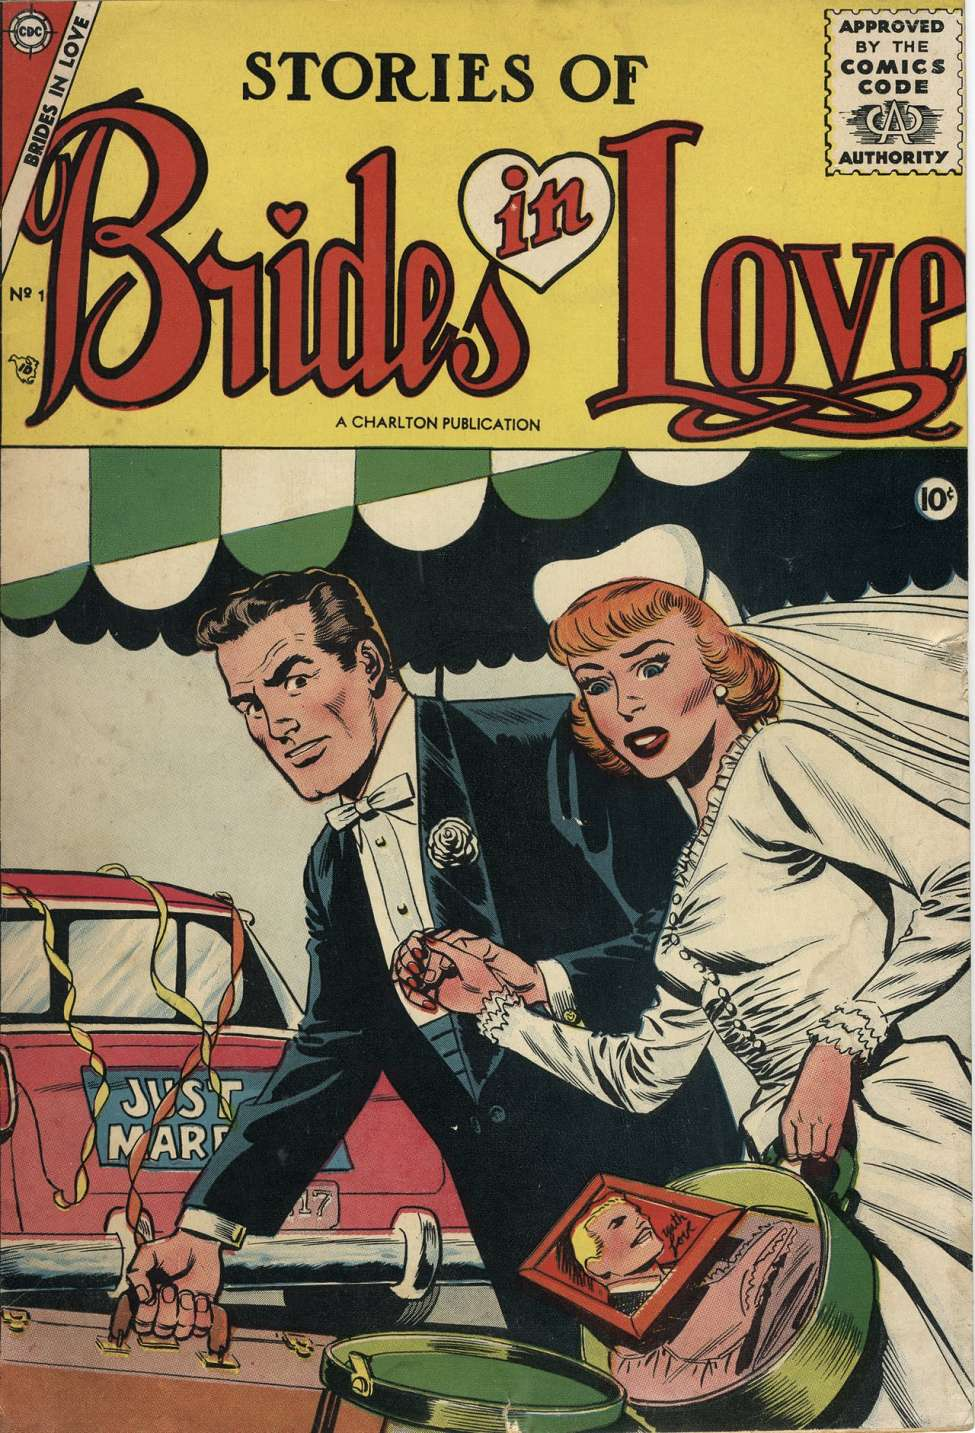 Comic Book Cover For Brides in Love #1